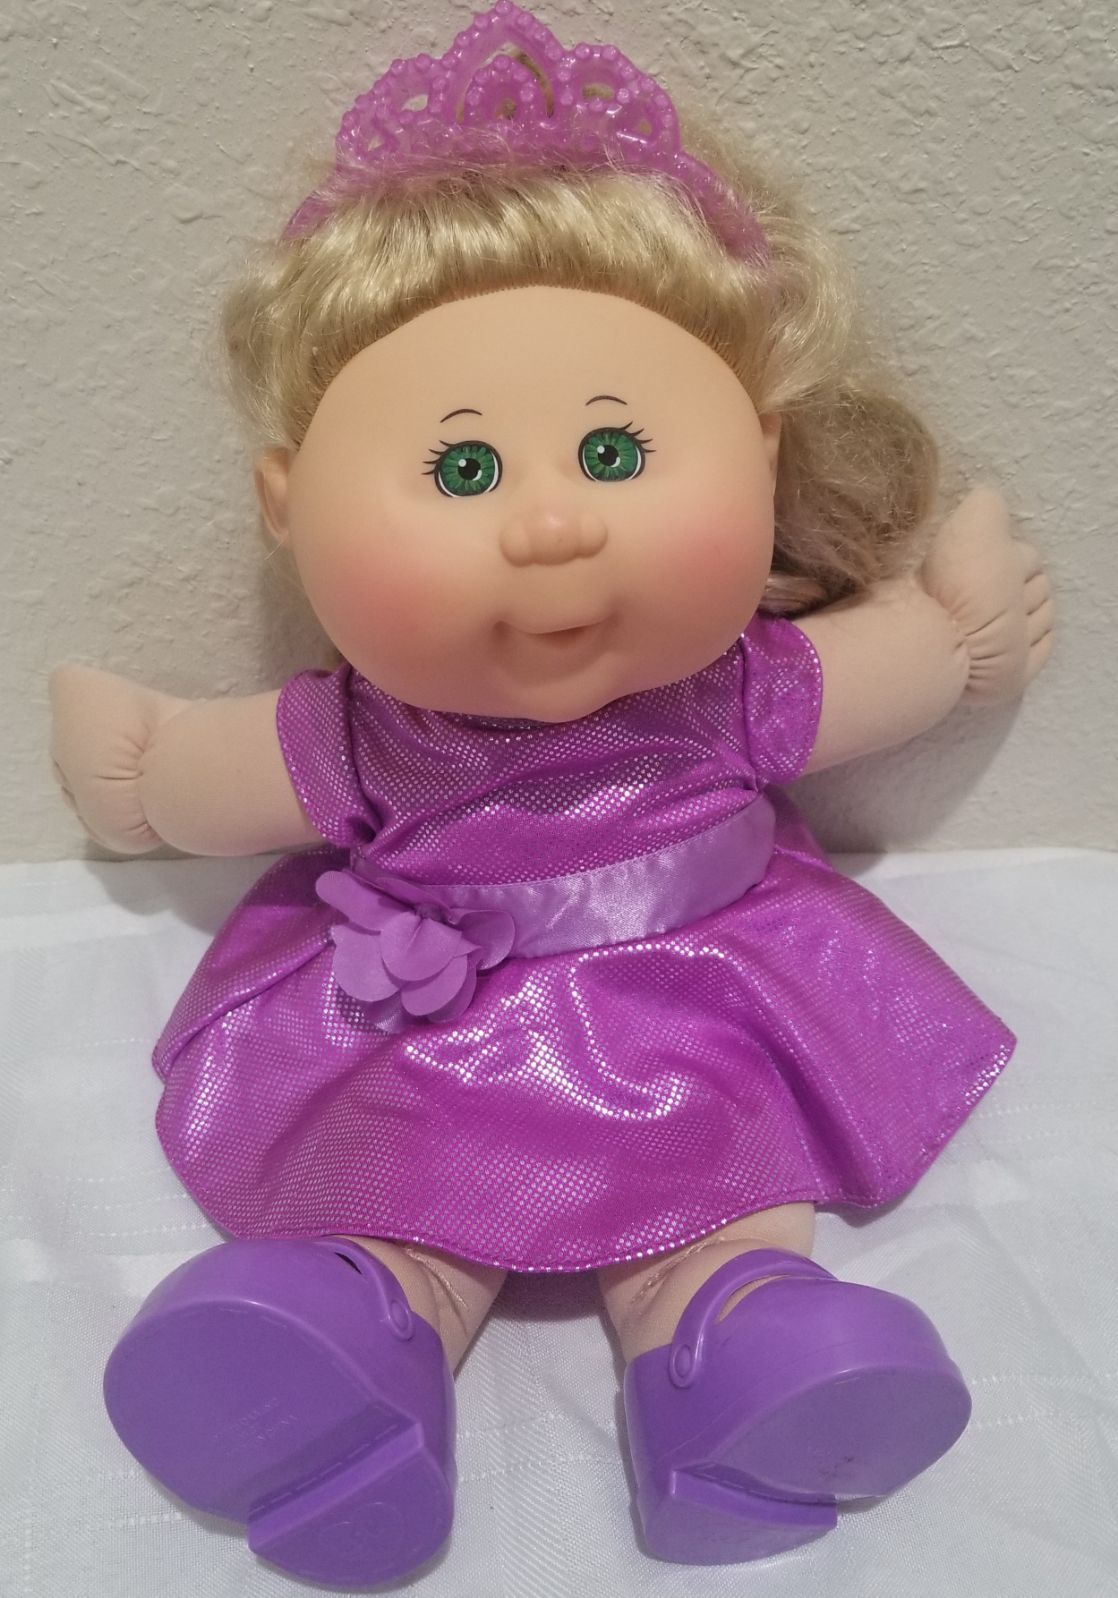 This Cute Cabbage Patch Doll Has Beautiful Blonde Hair With Green Eyes She Is Wearing A Cabbage Patch Kids Dolls Blonde Hair Green Eyes Beautiful Blonde Hair